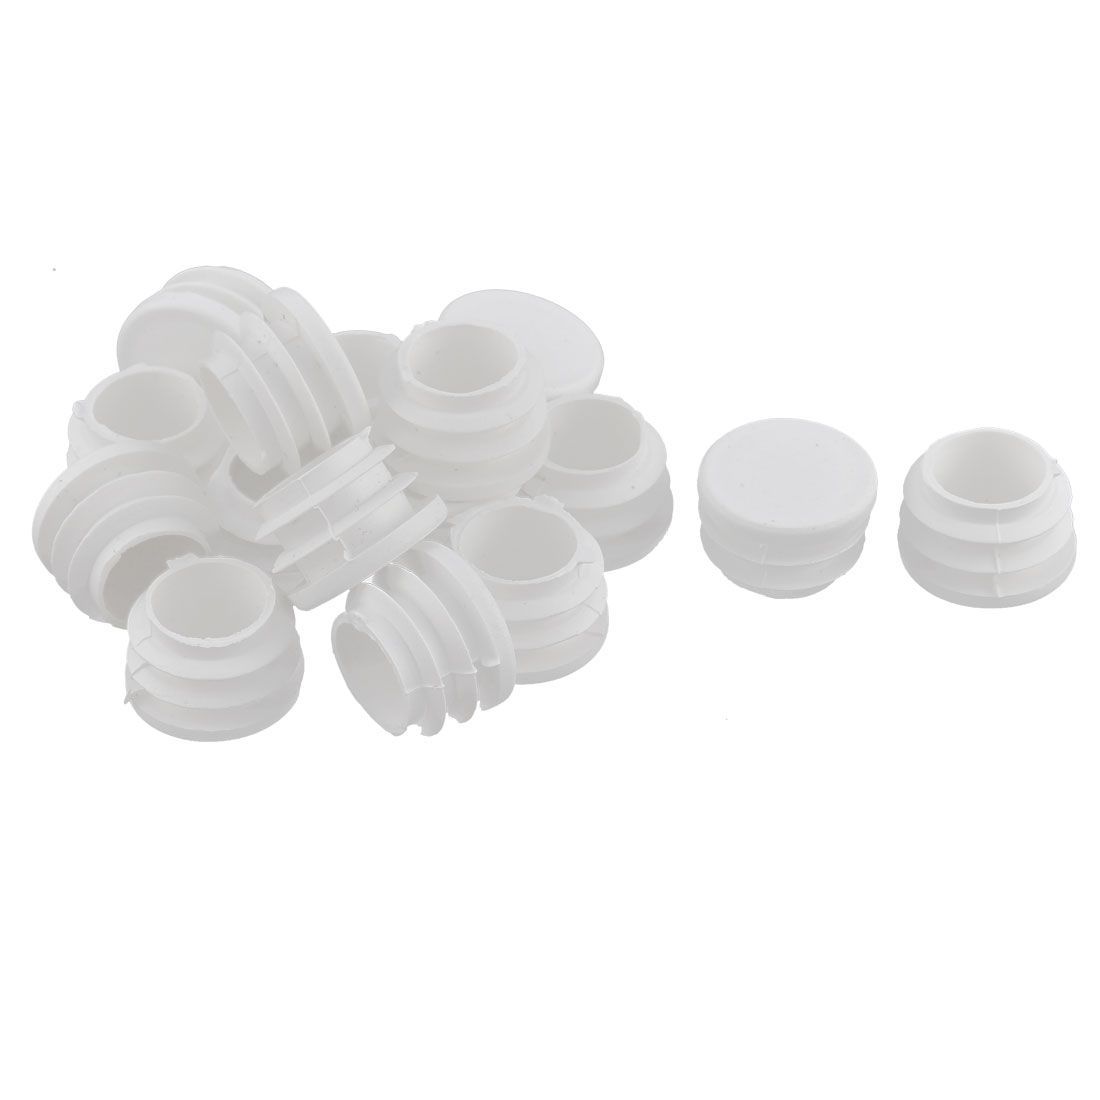 Furniture Feet Legs Plastic Round Shaped Tube Inserts End Blanking Caps 16pcs